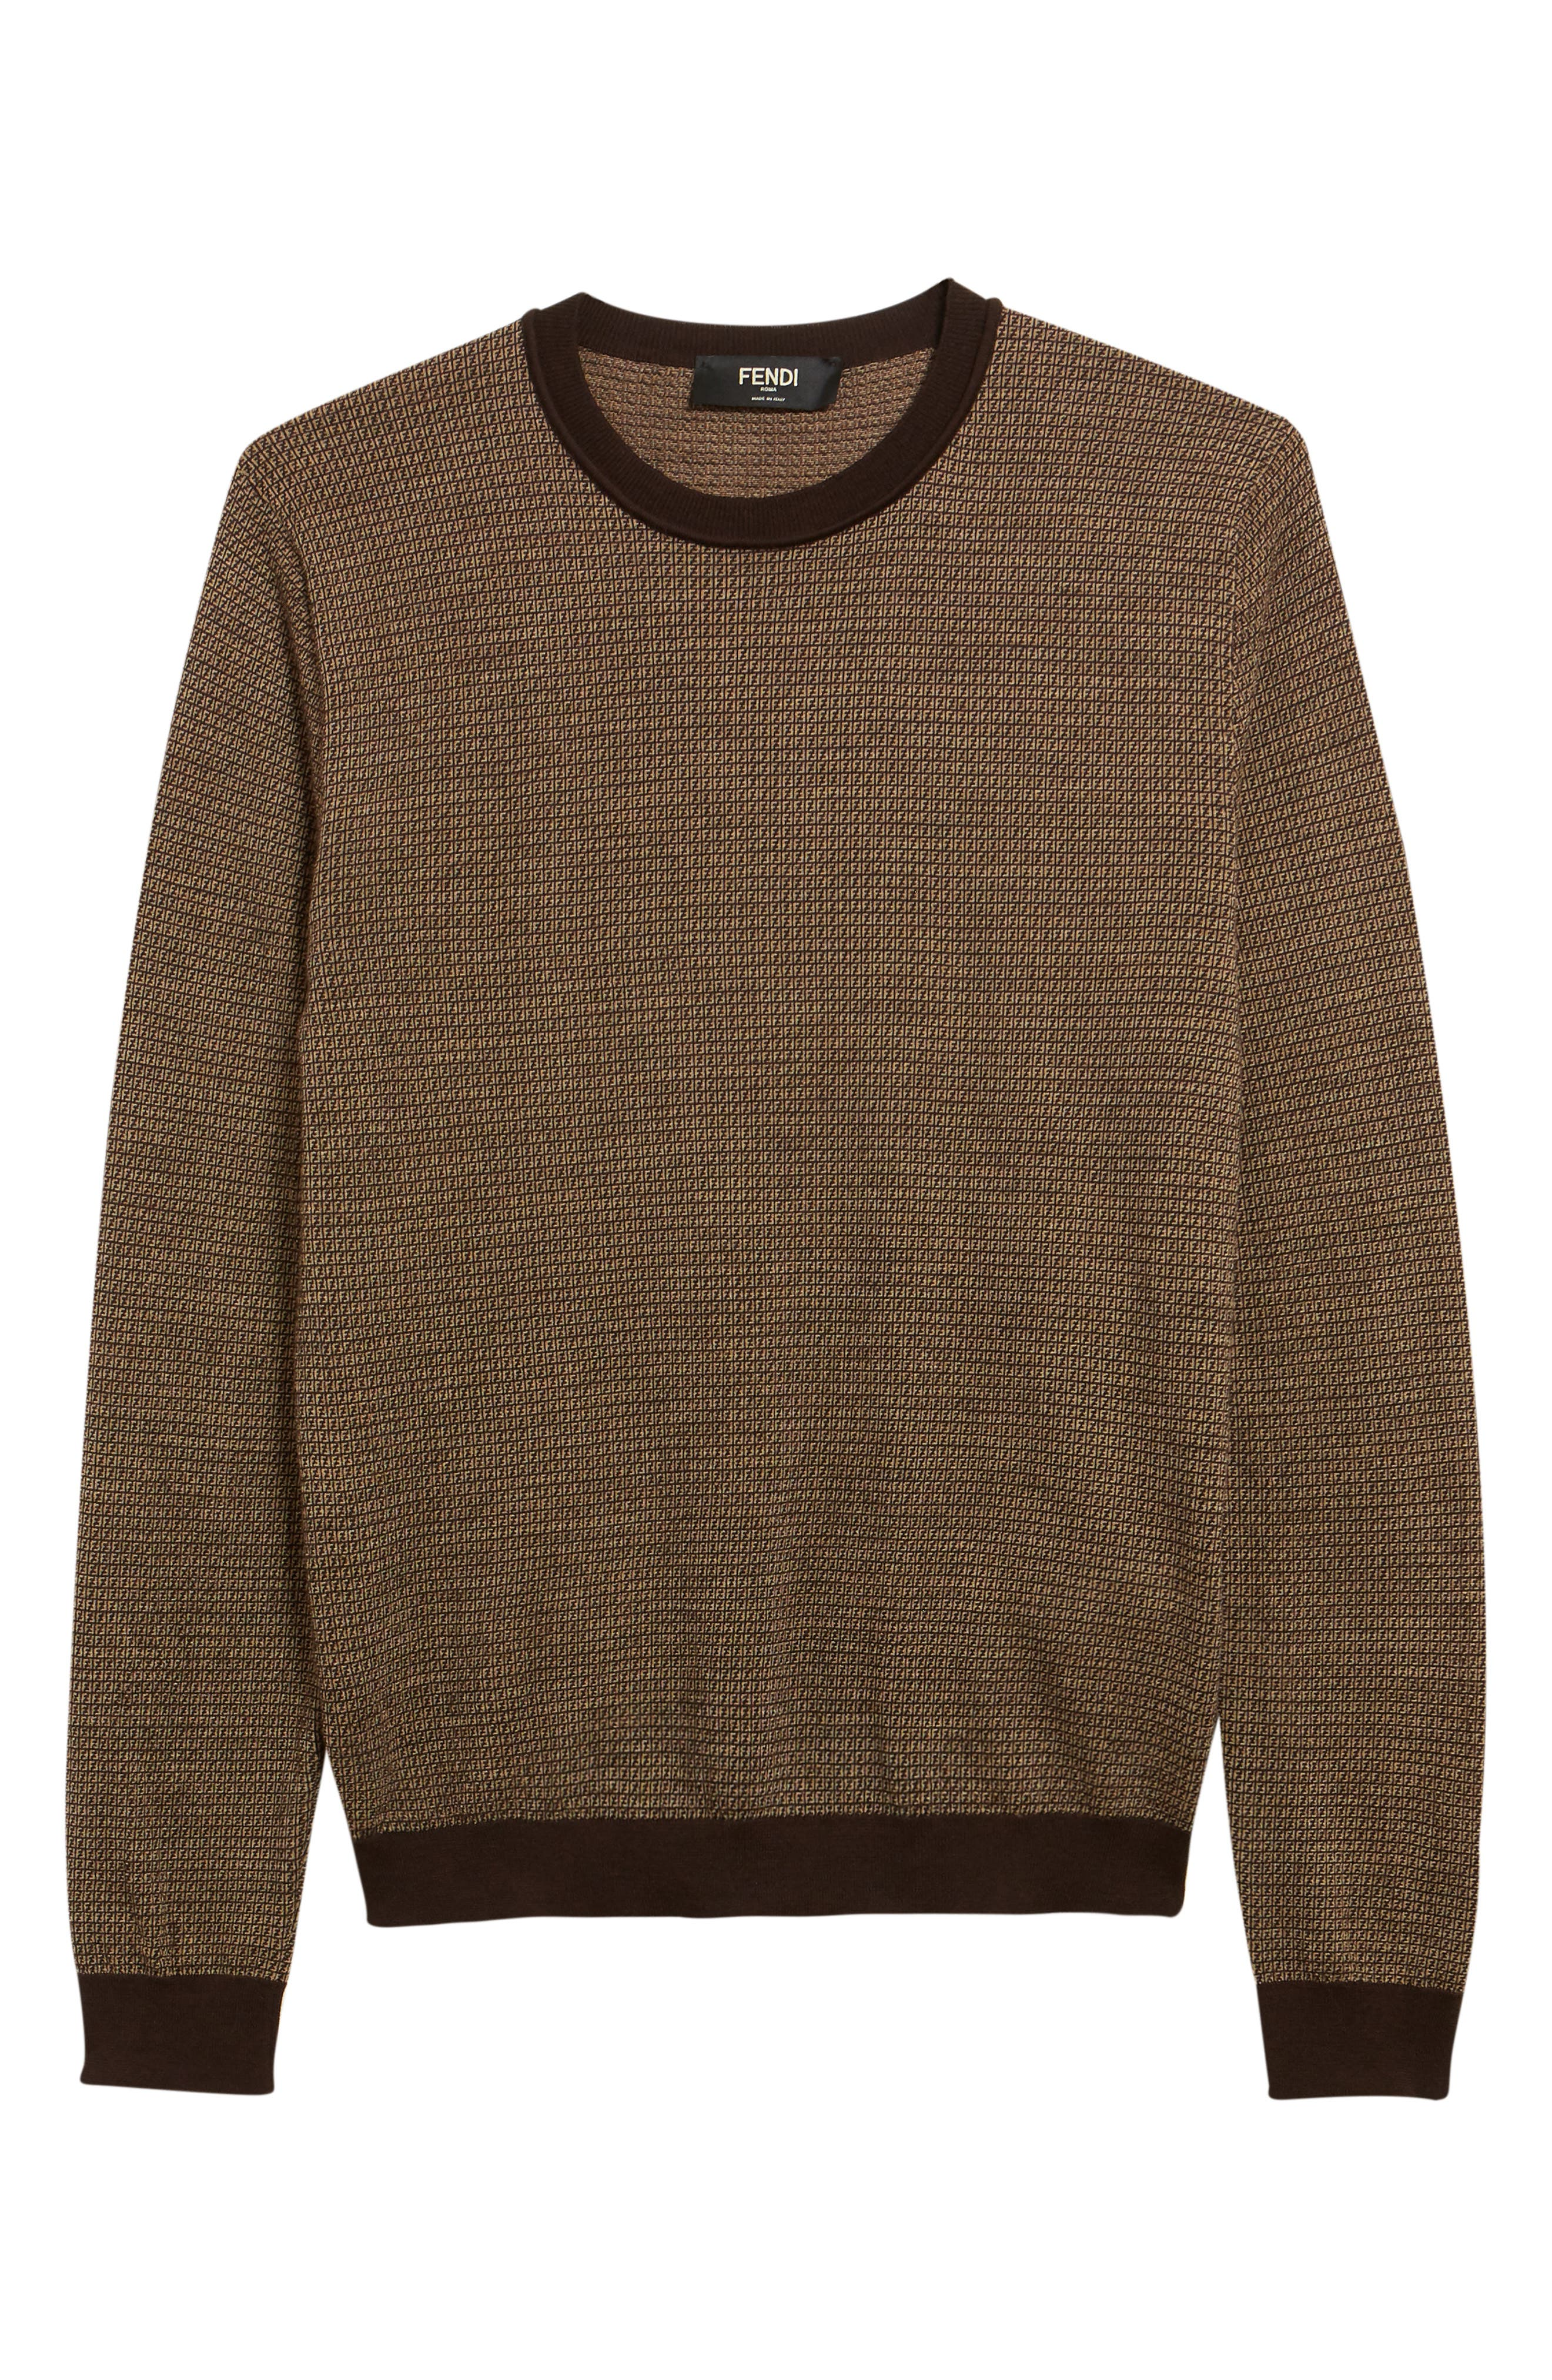 Fendi offers a subtler take on their iconic FF logo with this luxe crewneck sweater made from soft and cozy wool. Style Name: Fendi Micro Ff Logo Wool Sweater. Style Number: 5944883. Available in stores.